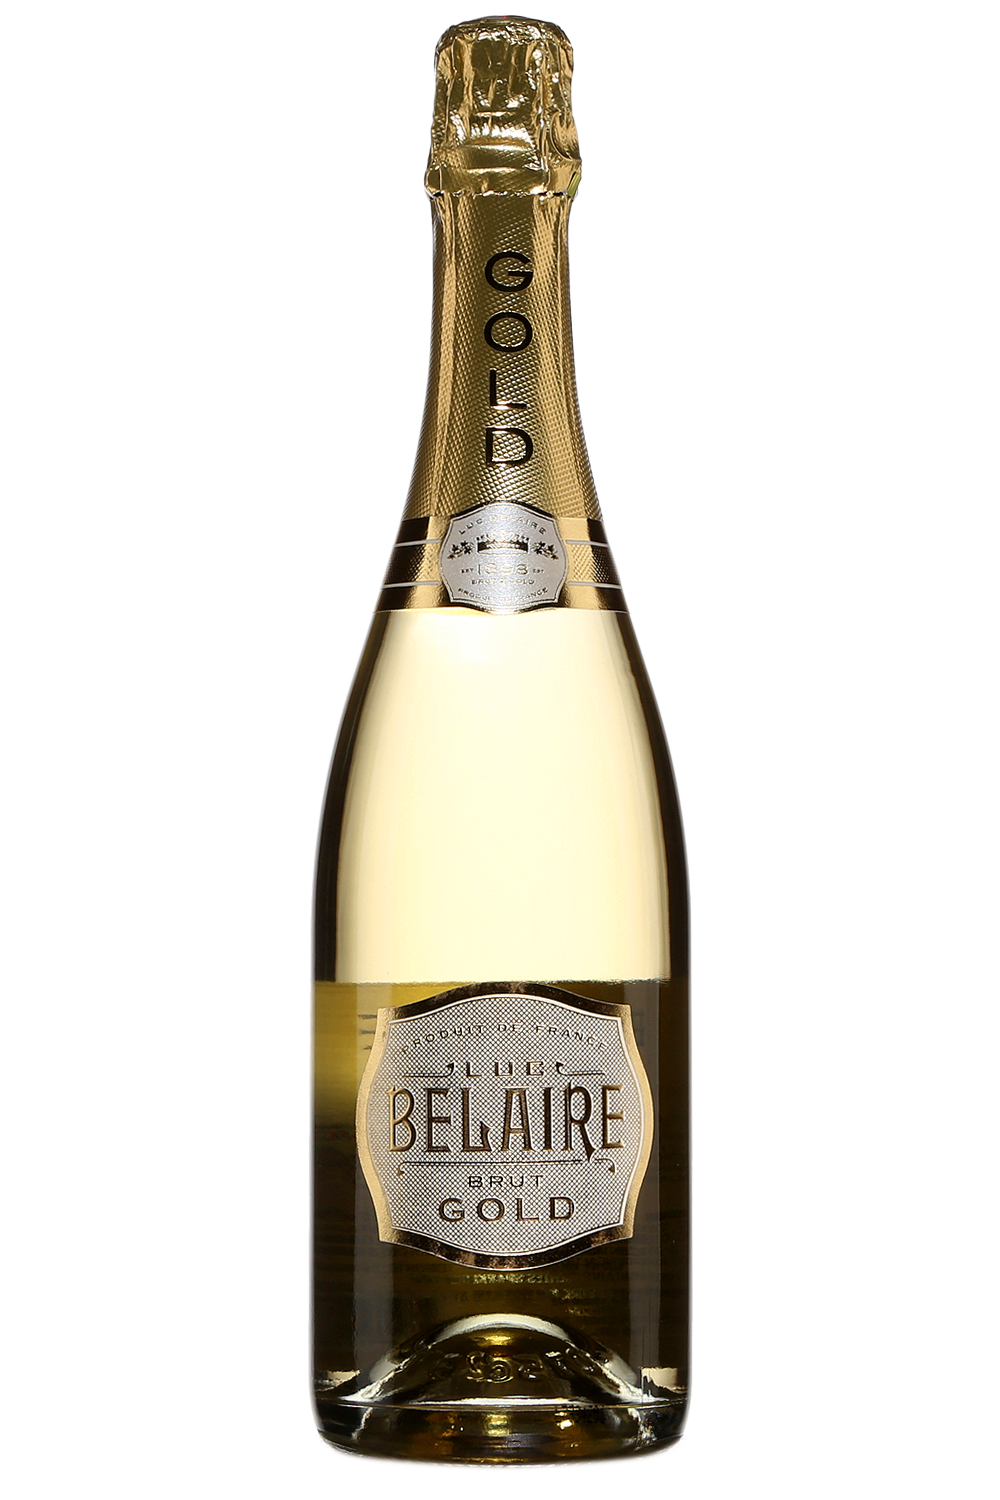 Belaire Gold